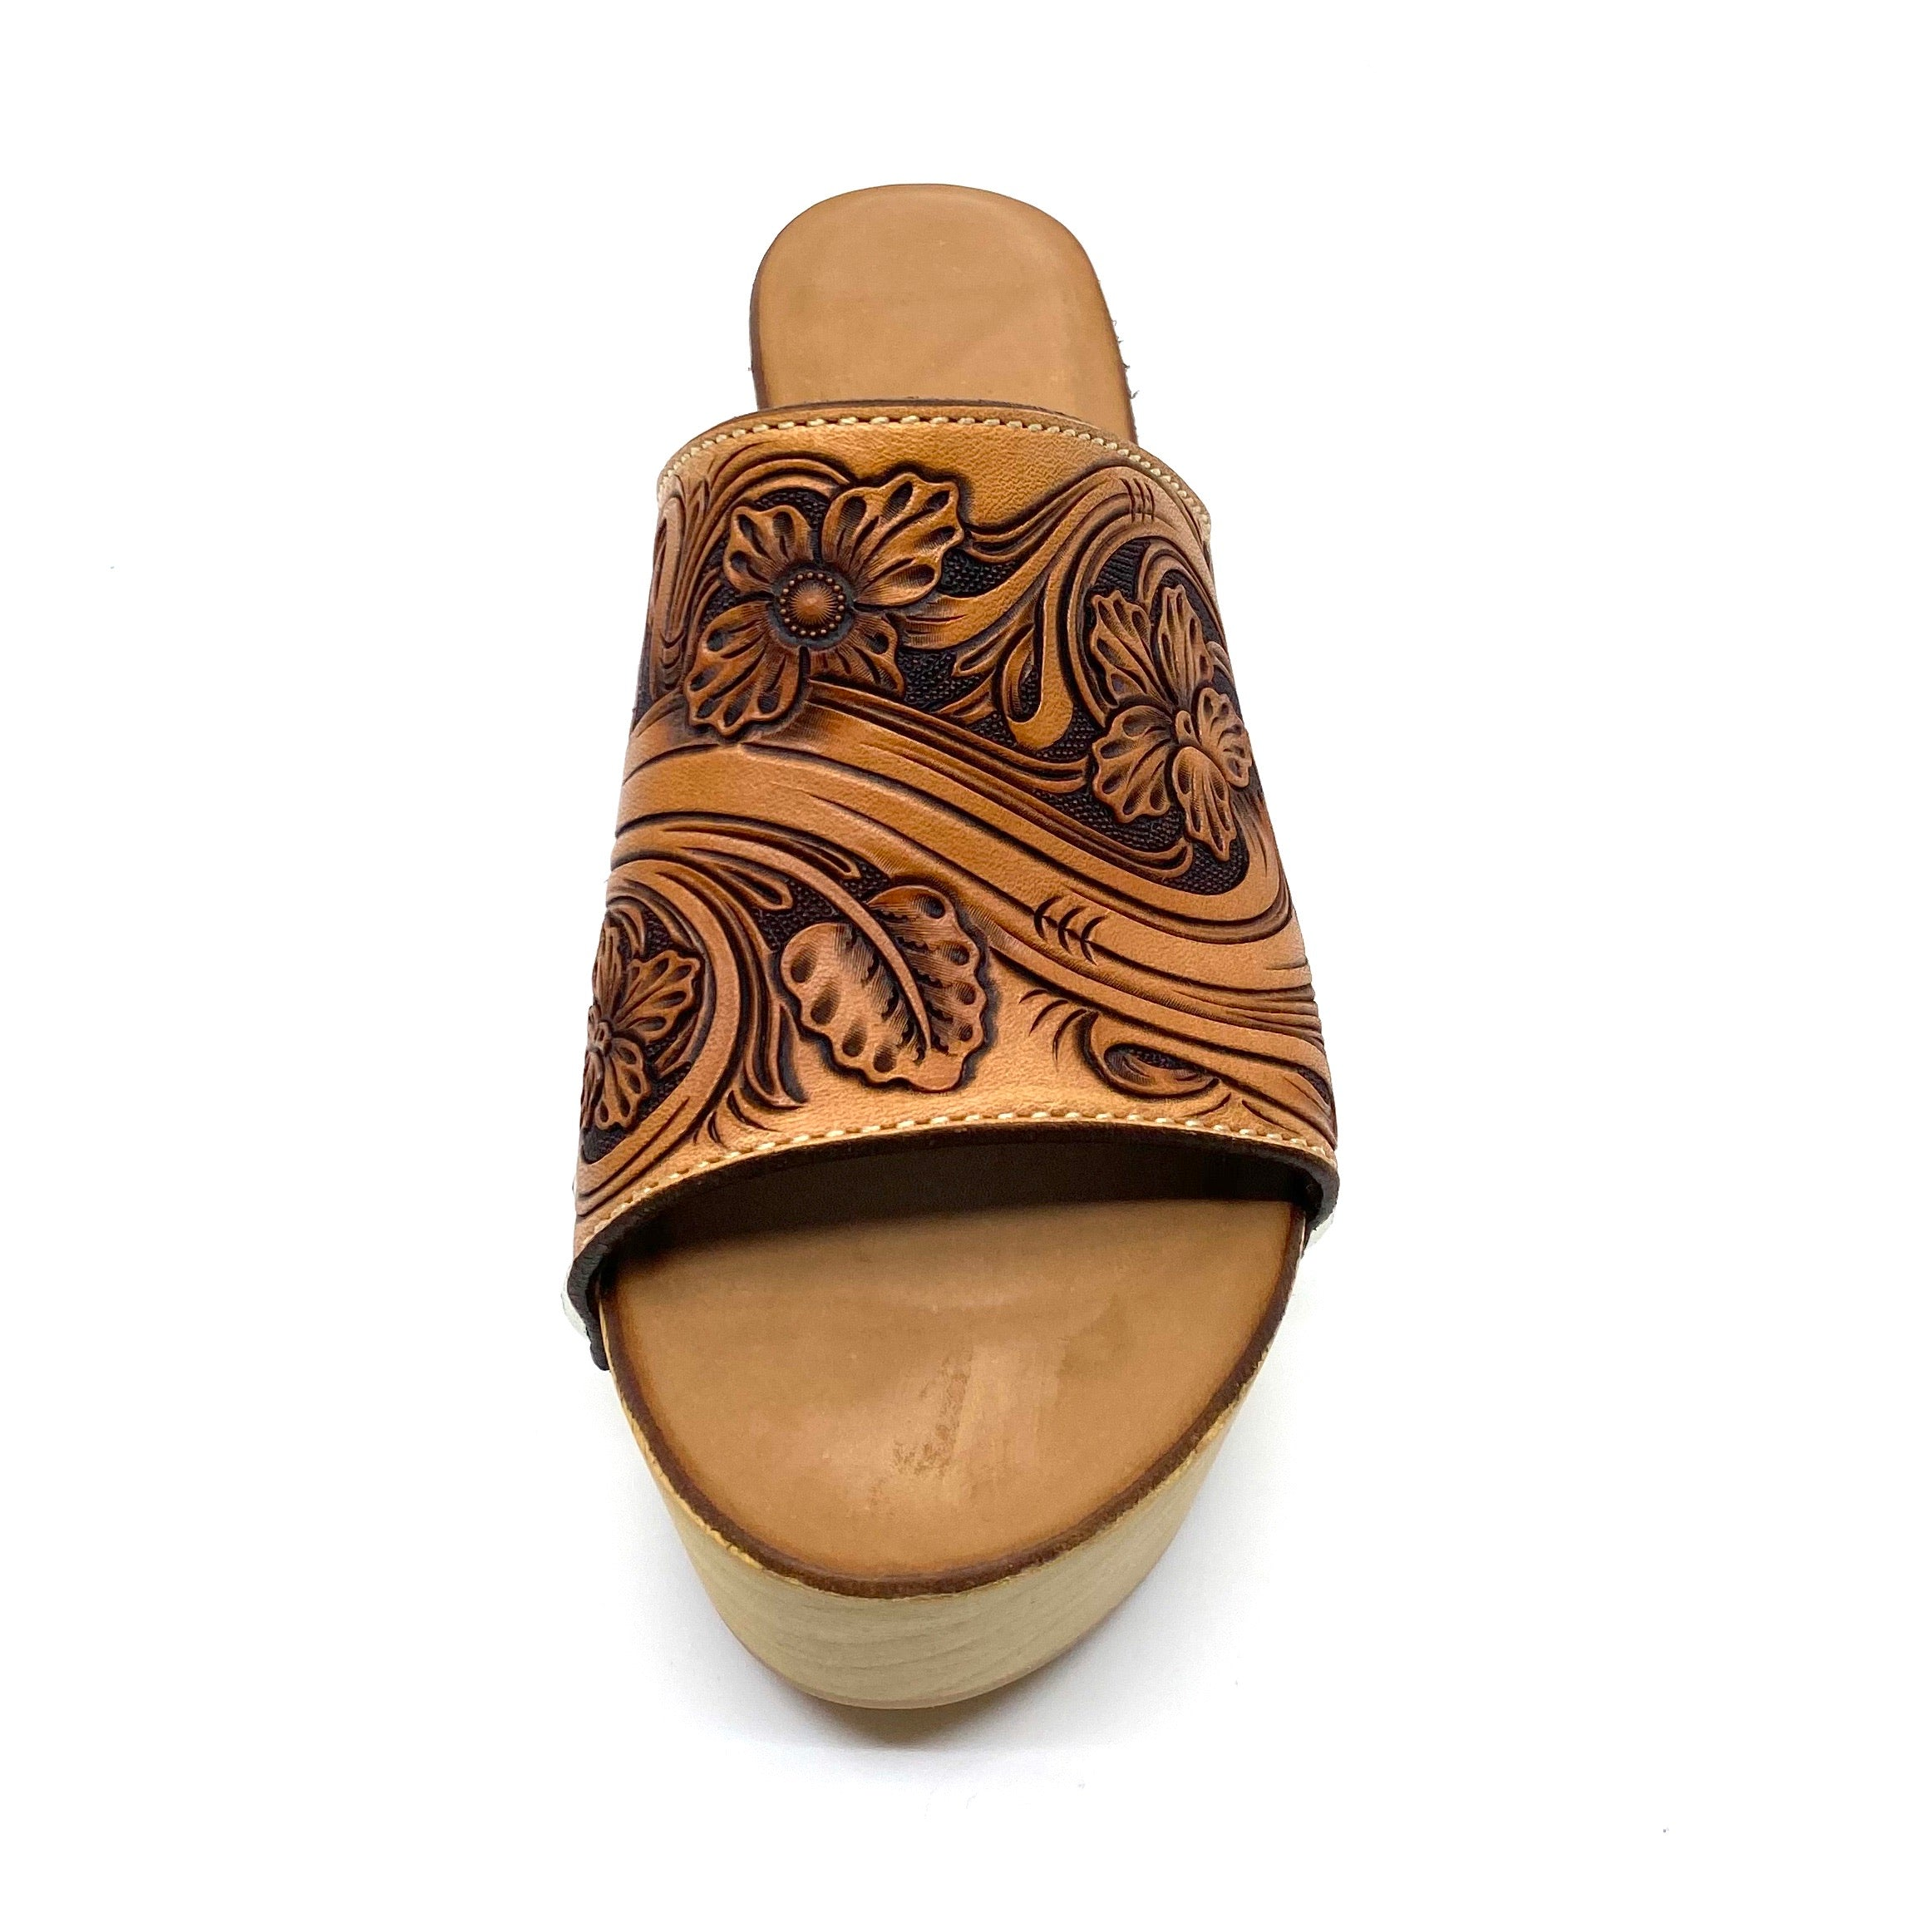 Tooled Slide Low Wedge DEPOSIT ONLY